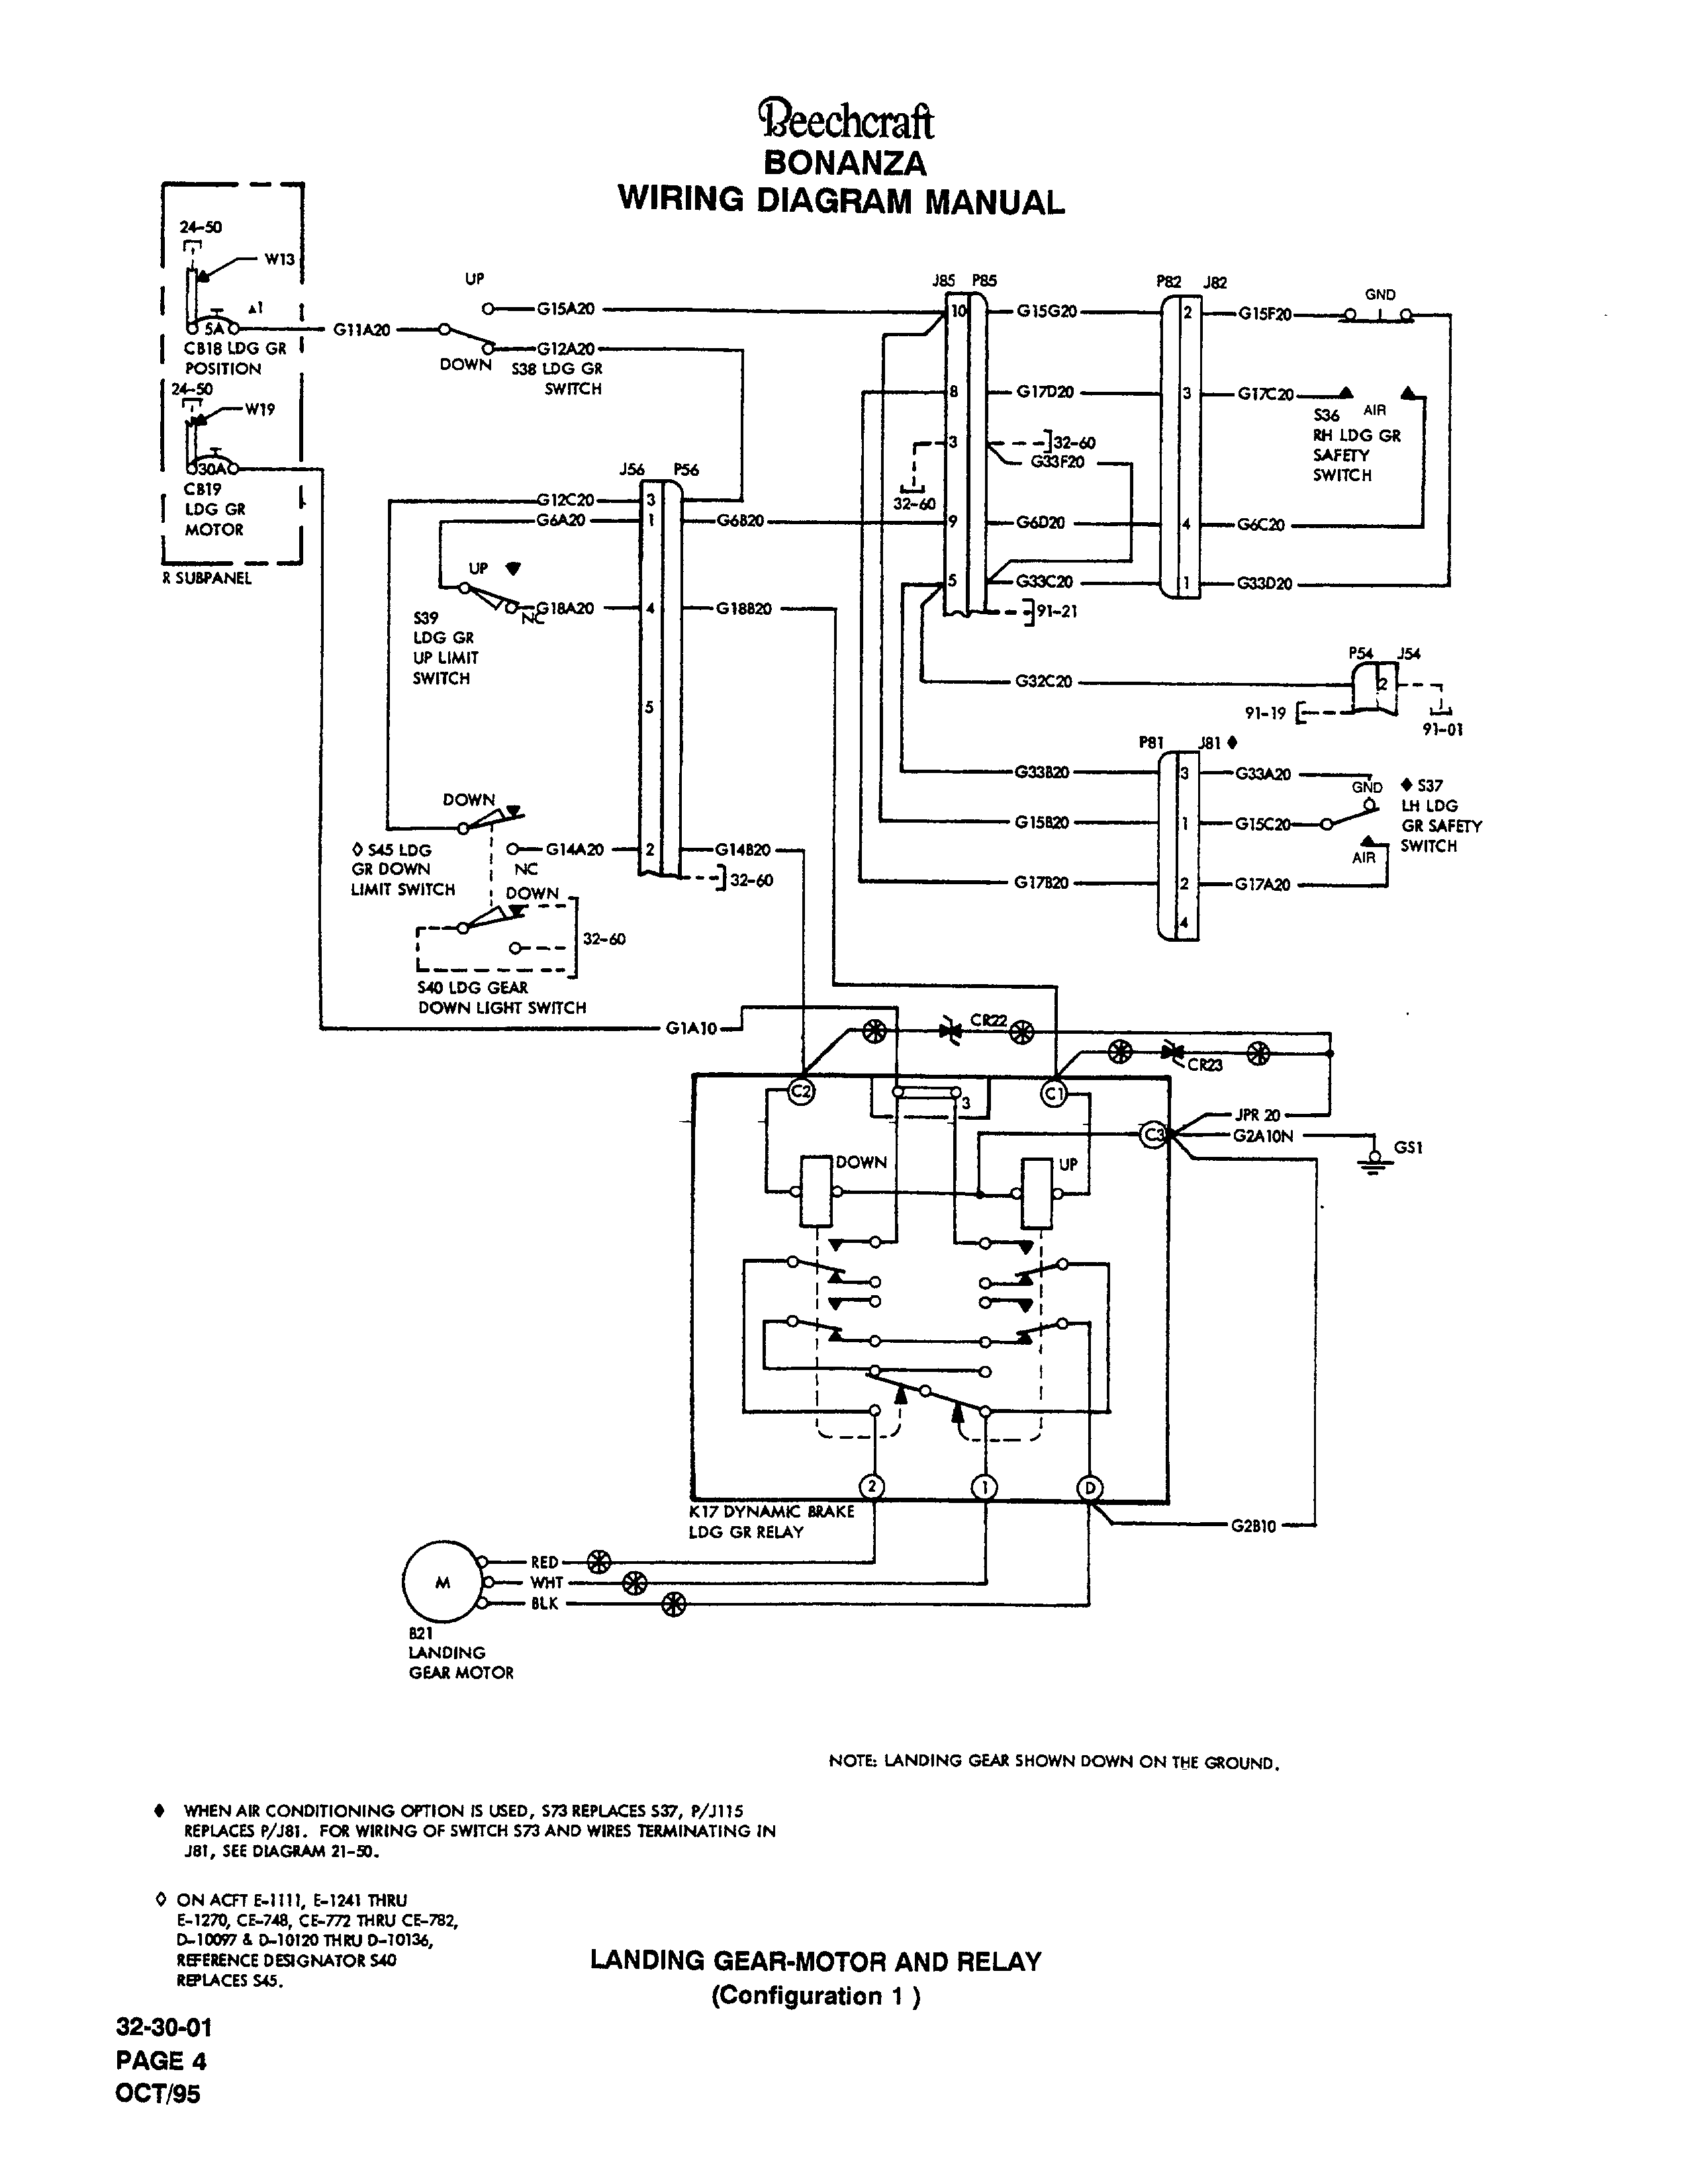 Accutemp Steam And Hold 208d8 300 Wiring Diagram : 48